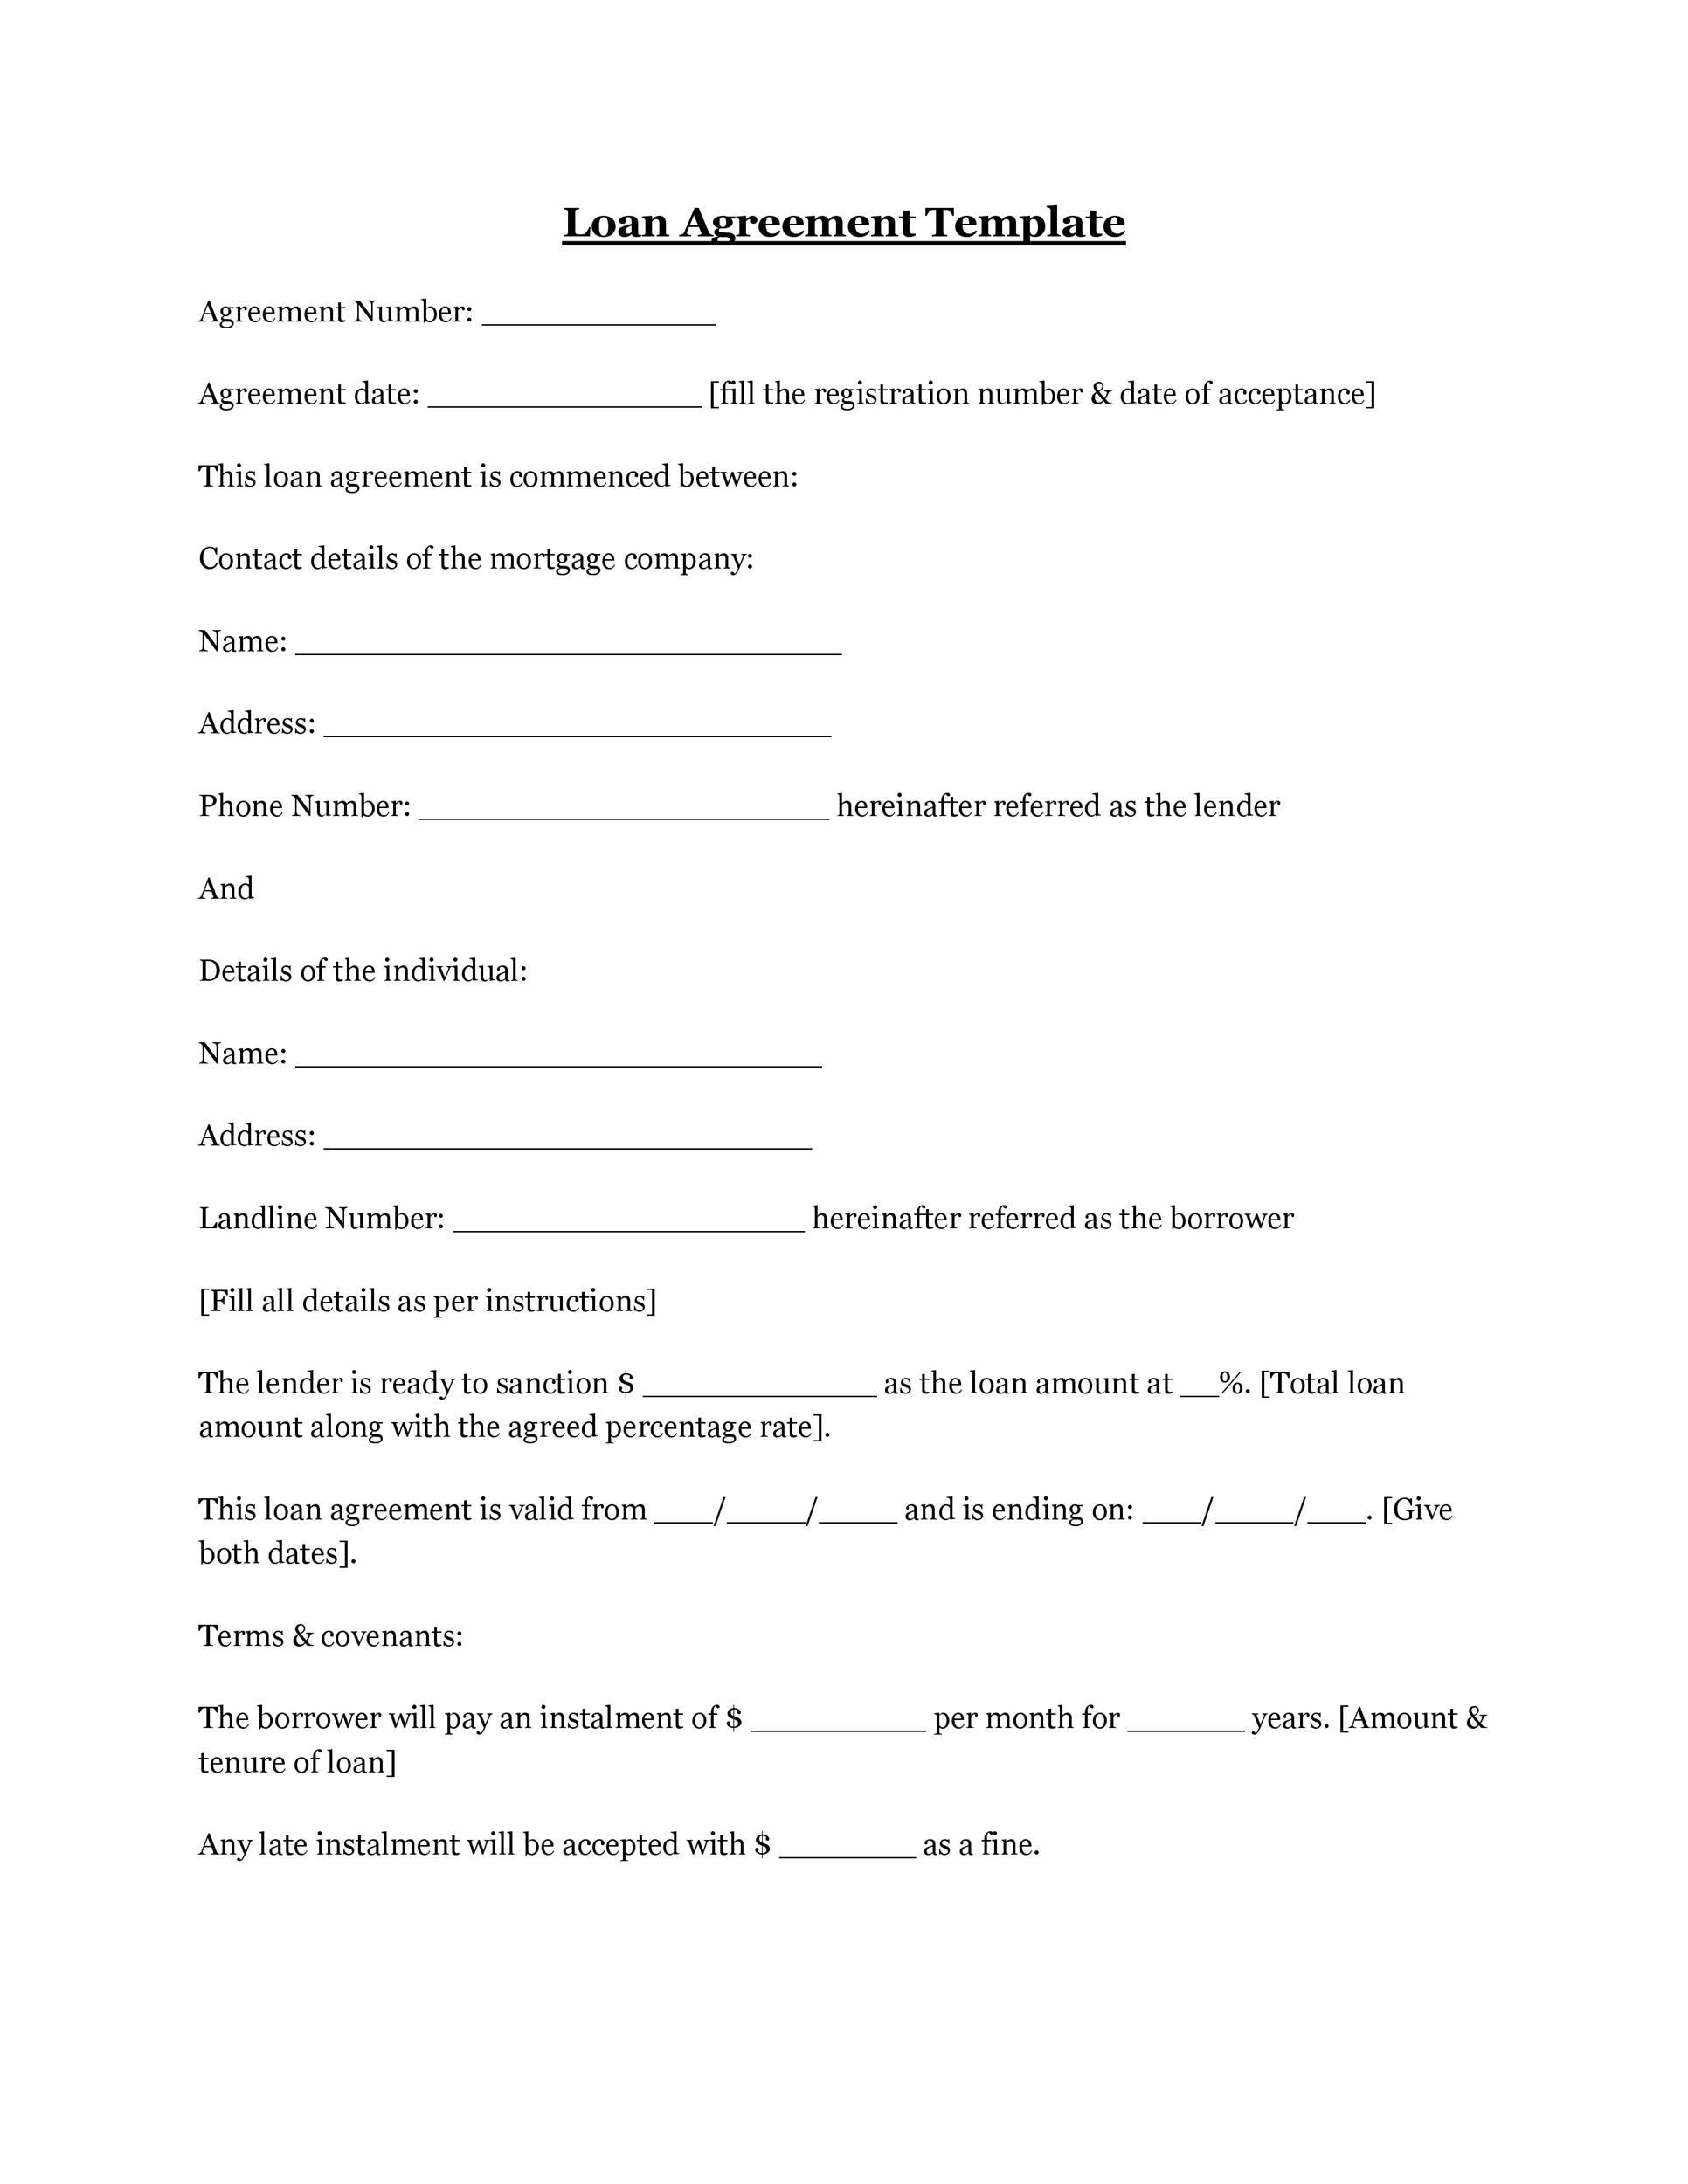 Charming Printable Loan Agreement Template 05 And Printable Loan Agreement